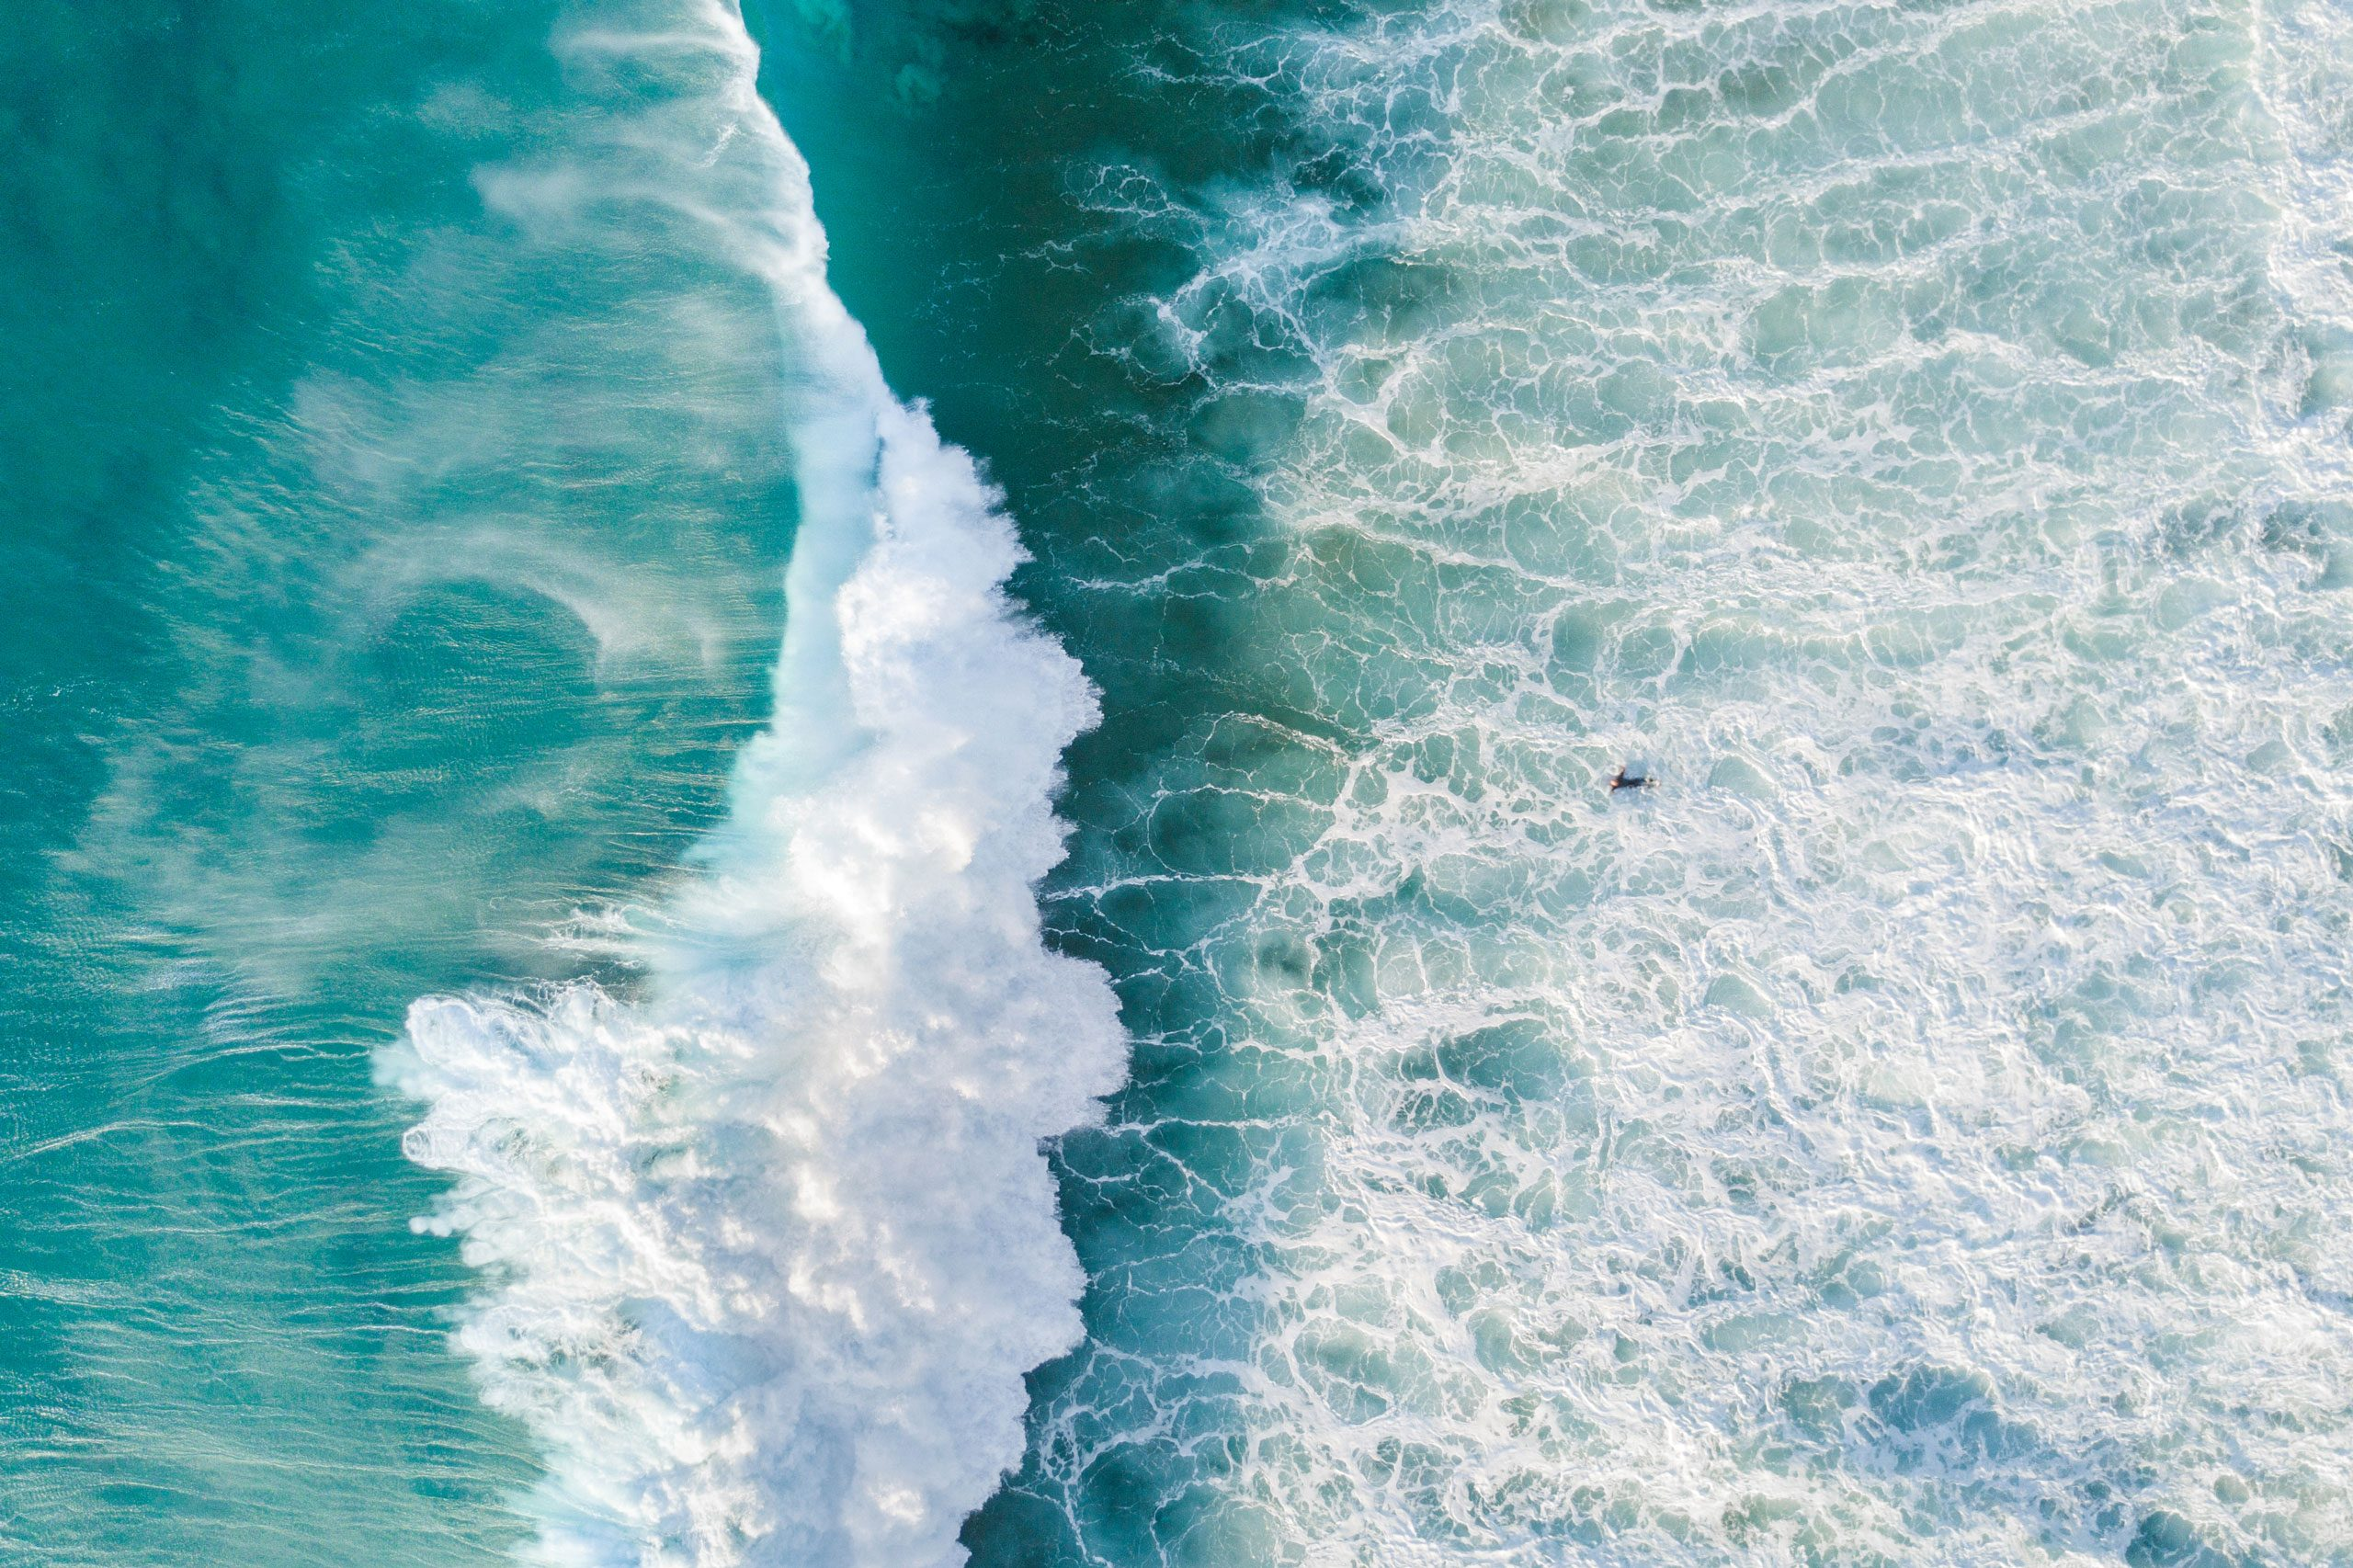 overhead view of ocean waves